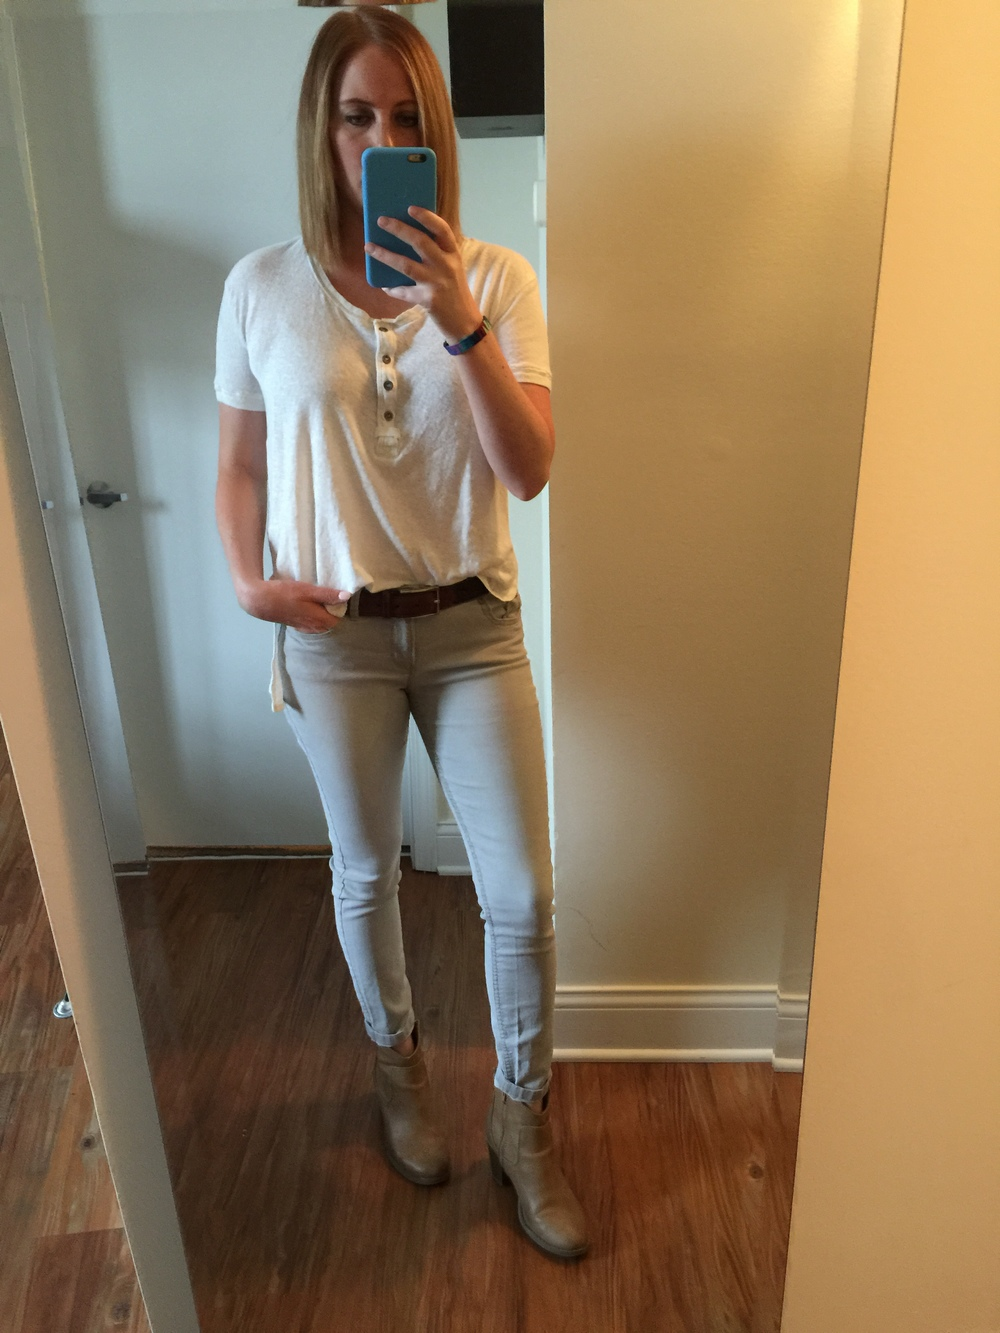 Shirt: Free People,  We The Free Downtown Girl Henley  Jeans: Express,  Ankle Legging, Mia-Mid Rise, Shoes: Old Navy